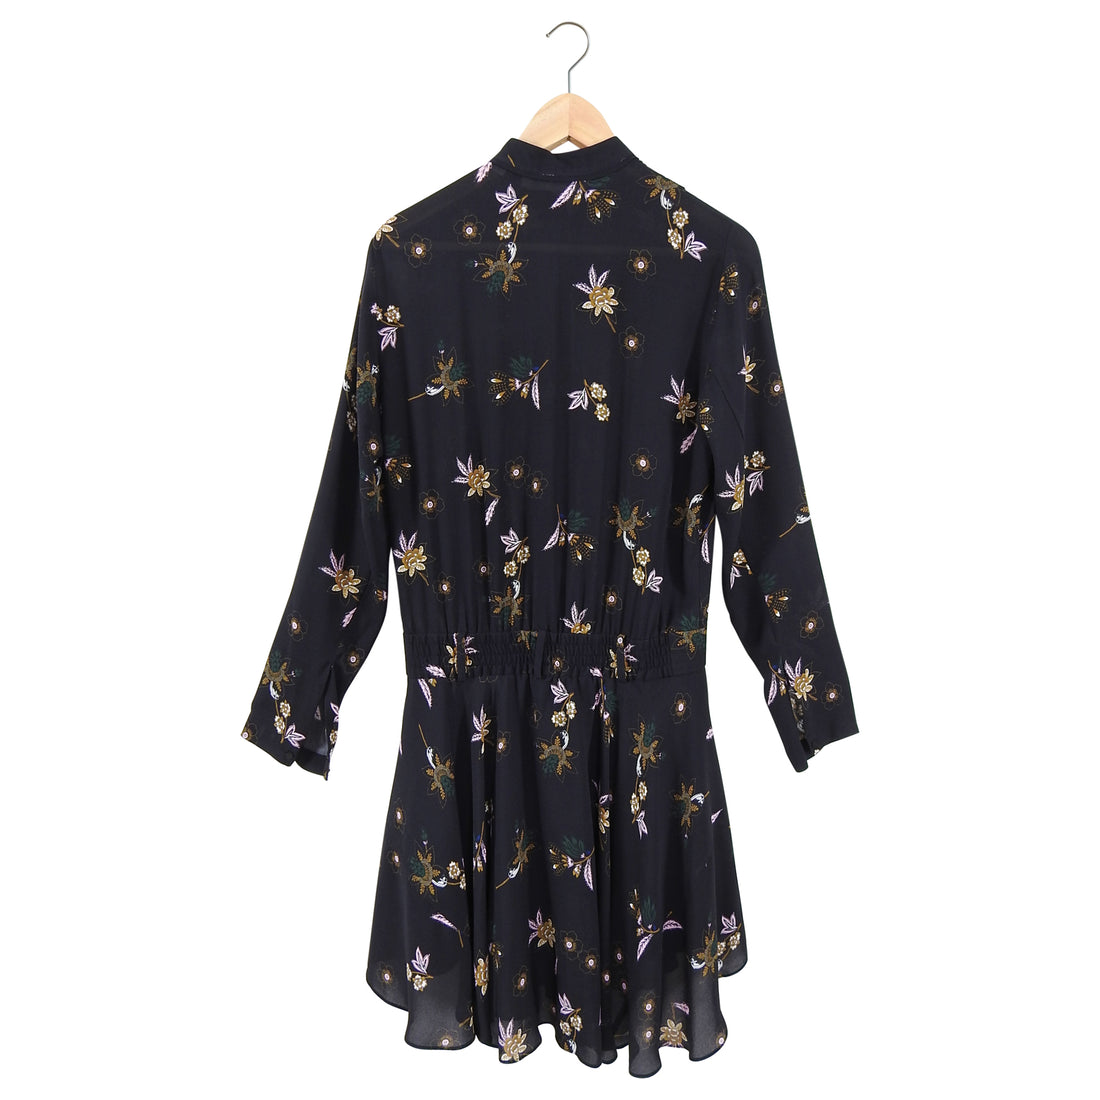 ALC Black Floral Boho Campbell Dress - 4